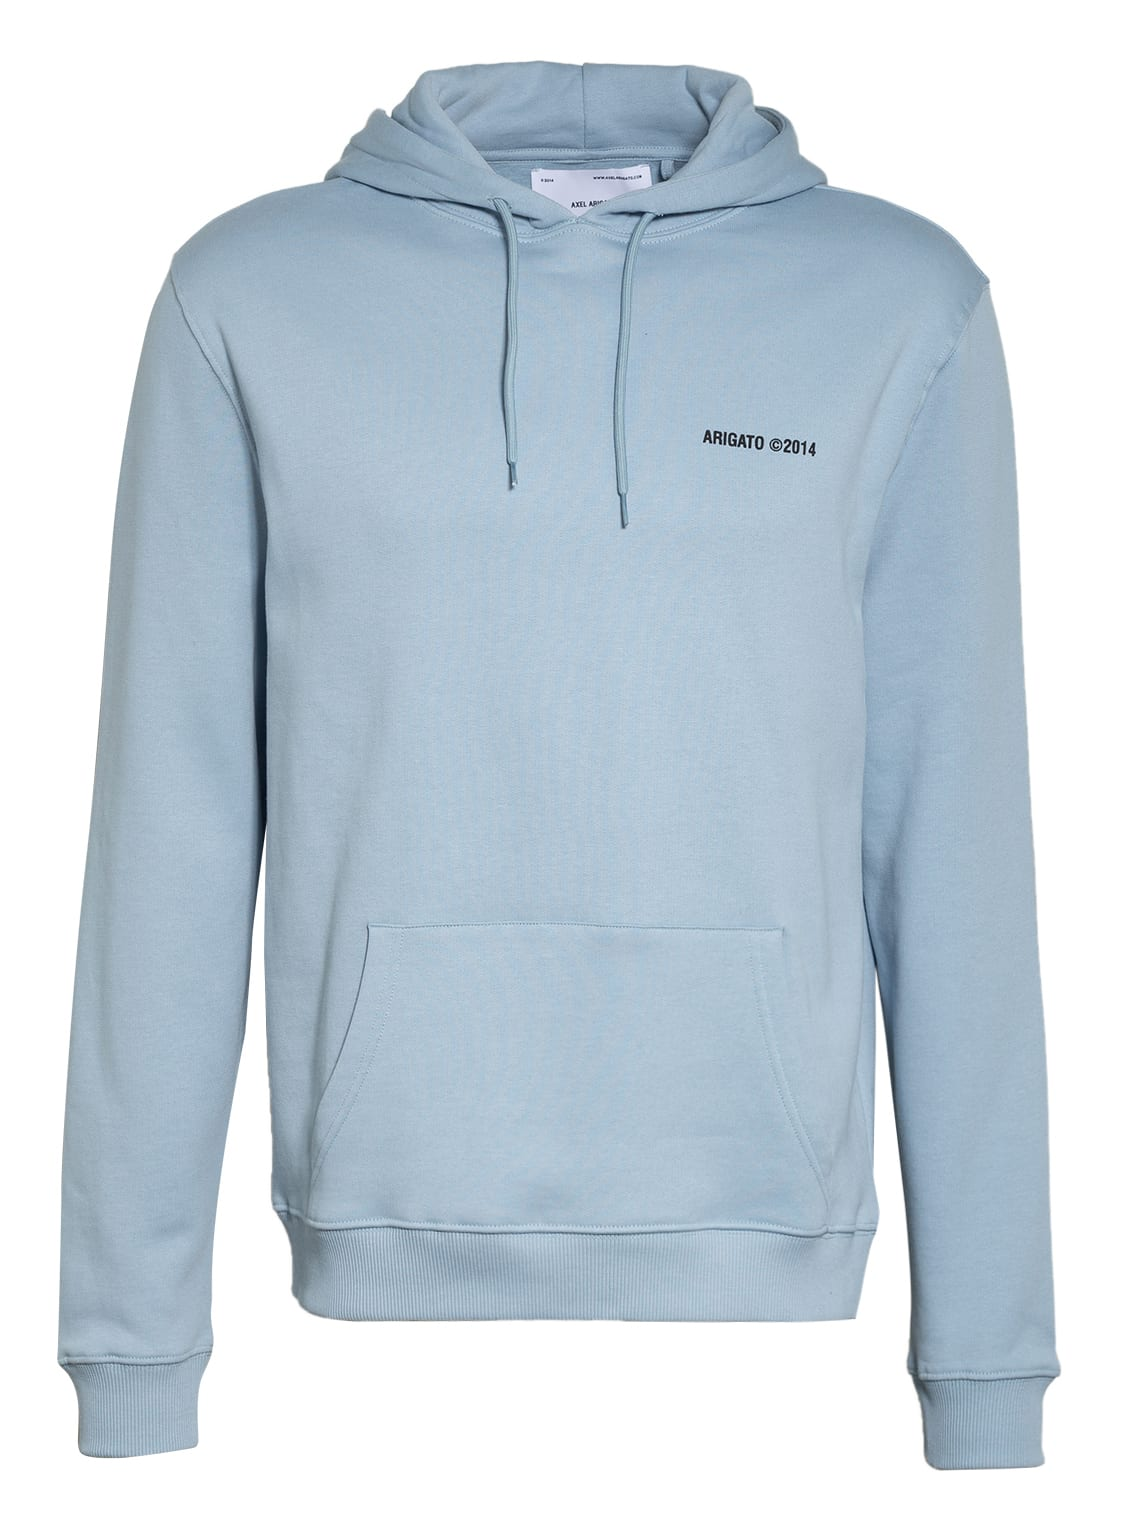 Image of Axel Arigato Hoodie London blau